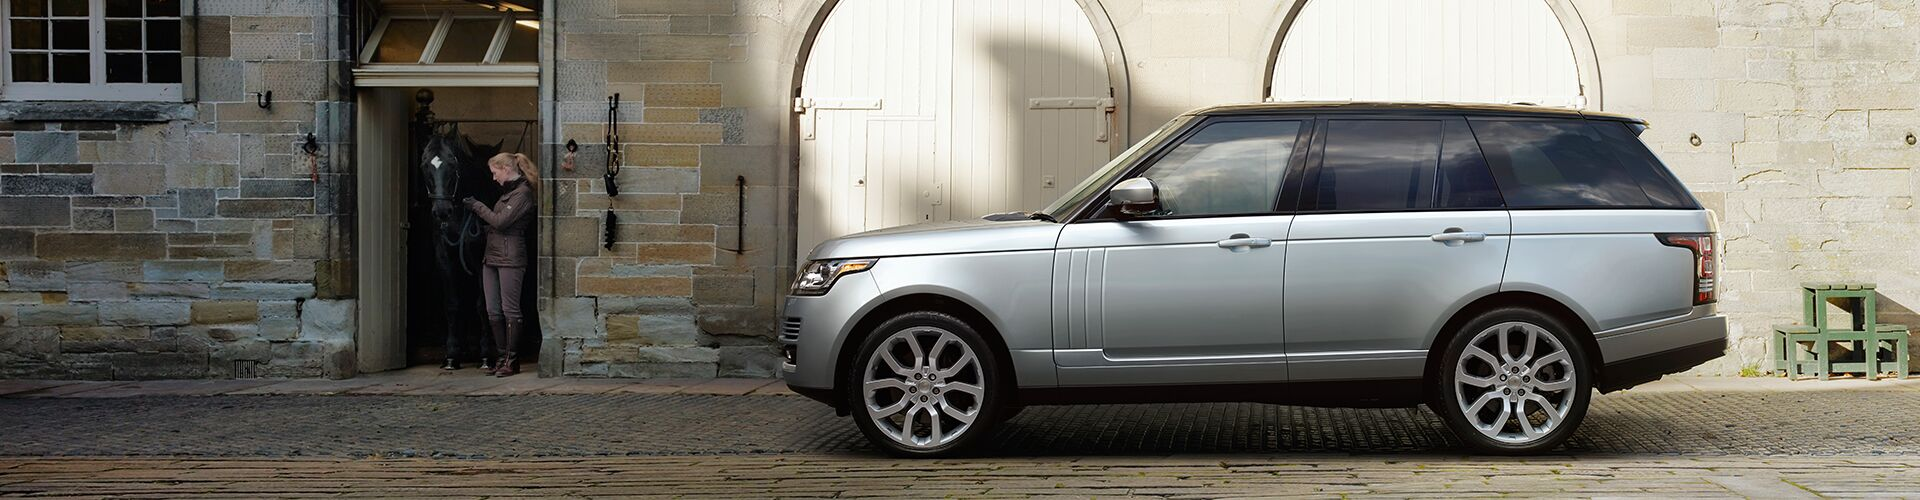 New Range Rover at Land Rover Milford